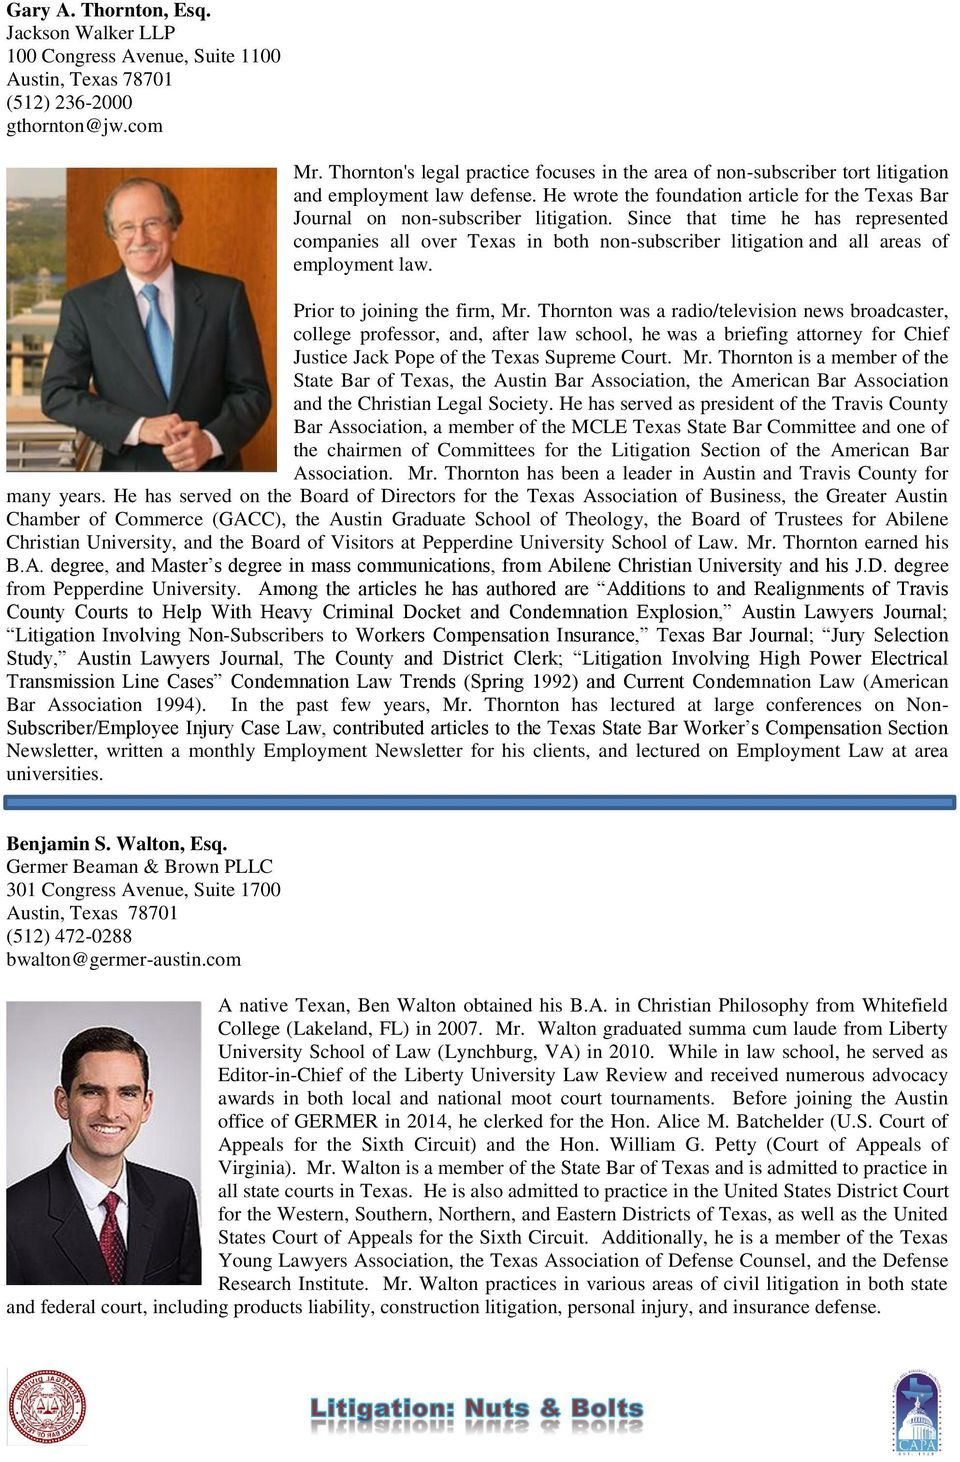 Since that time he has represented companies all over Texas in both non-subscriber litigation and all areas of employment law. Prior to joining the firm, Mr.